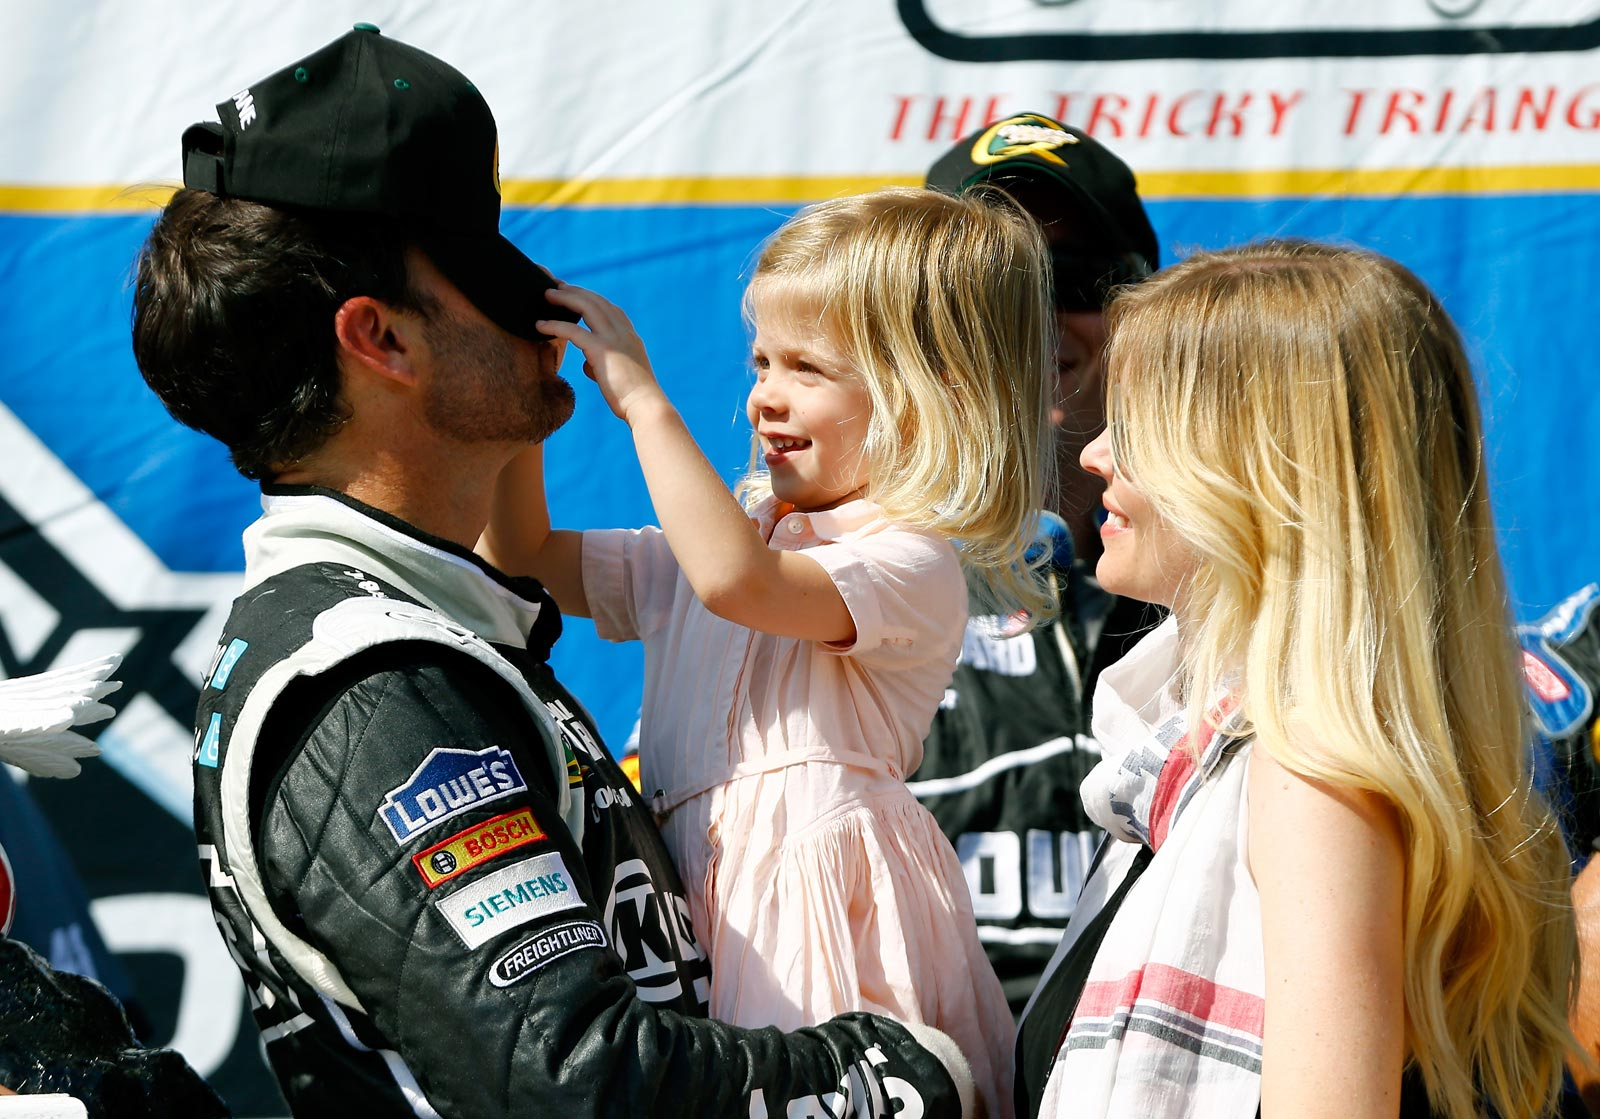 Jimmie_Johnson_Win_Victory_Lane_Family_Pocono_NSCS_060913